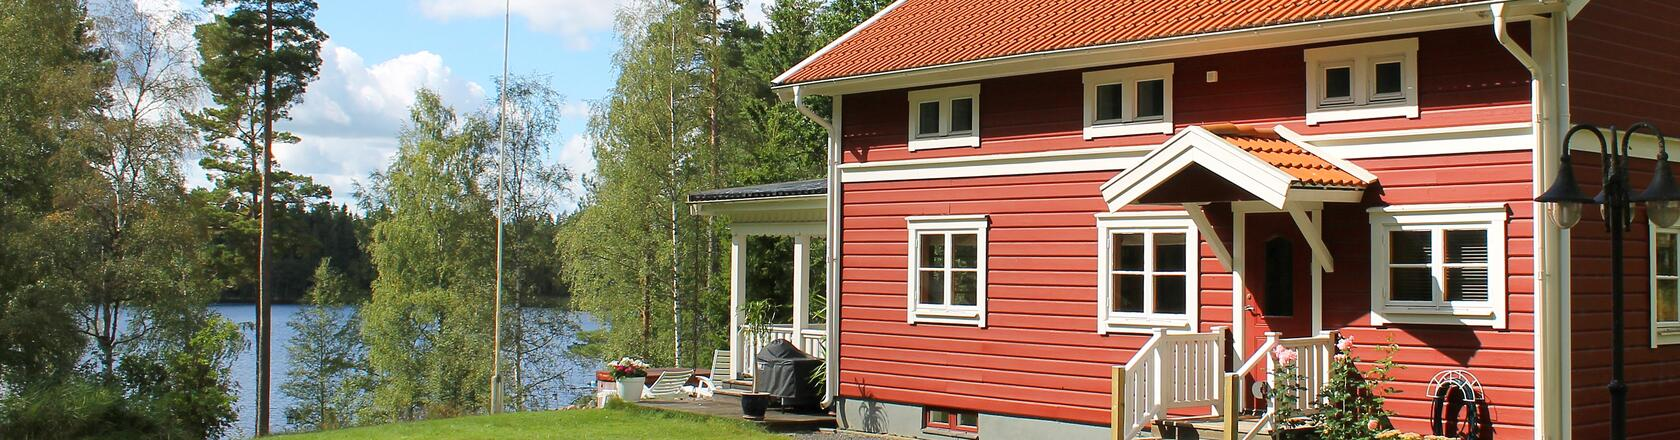 Bromölla in Sweden — Rent a holiday home with DanCenter